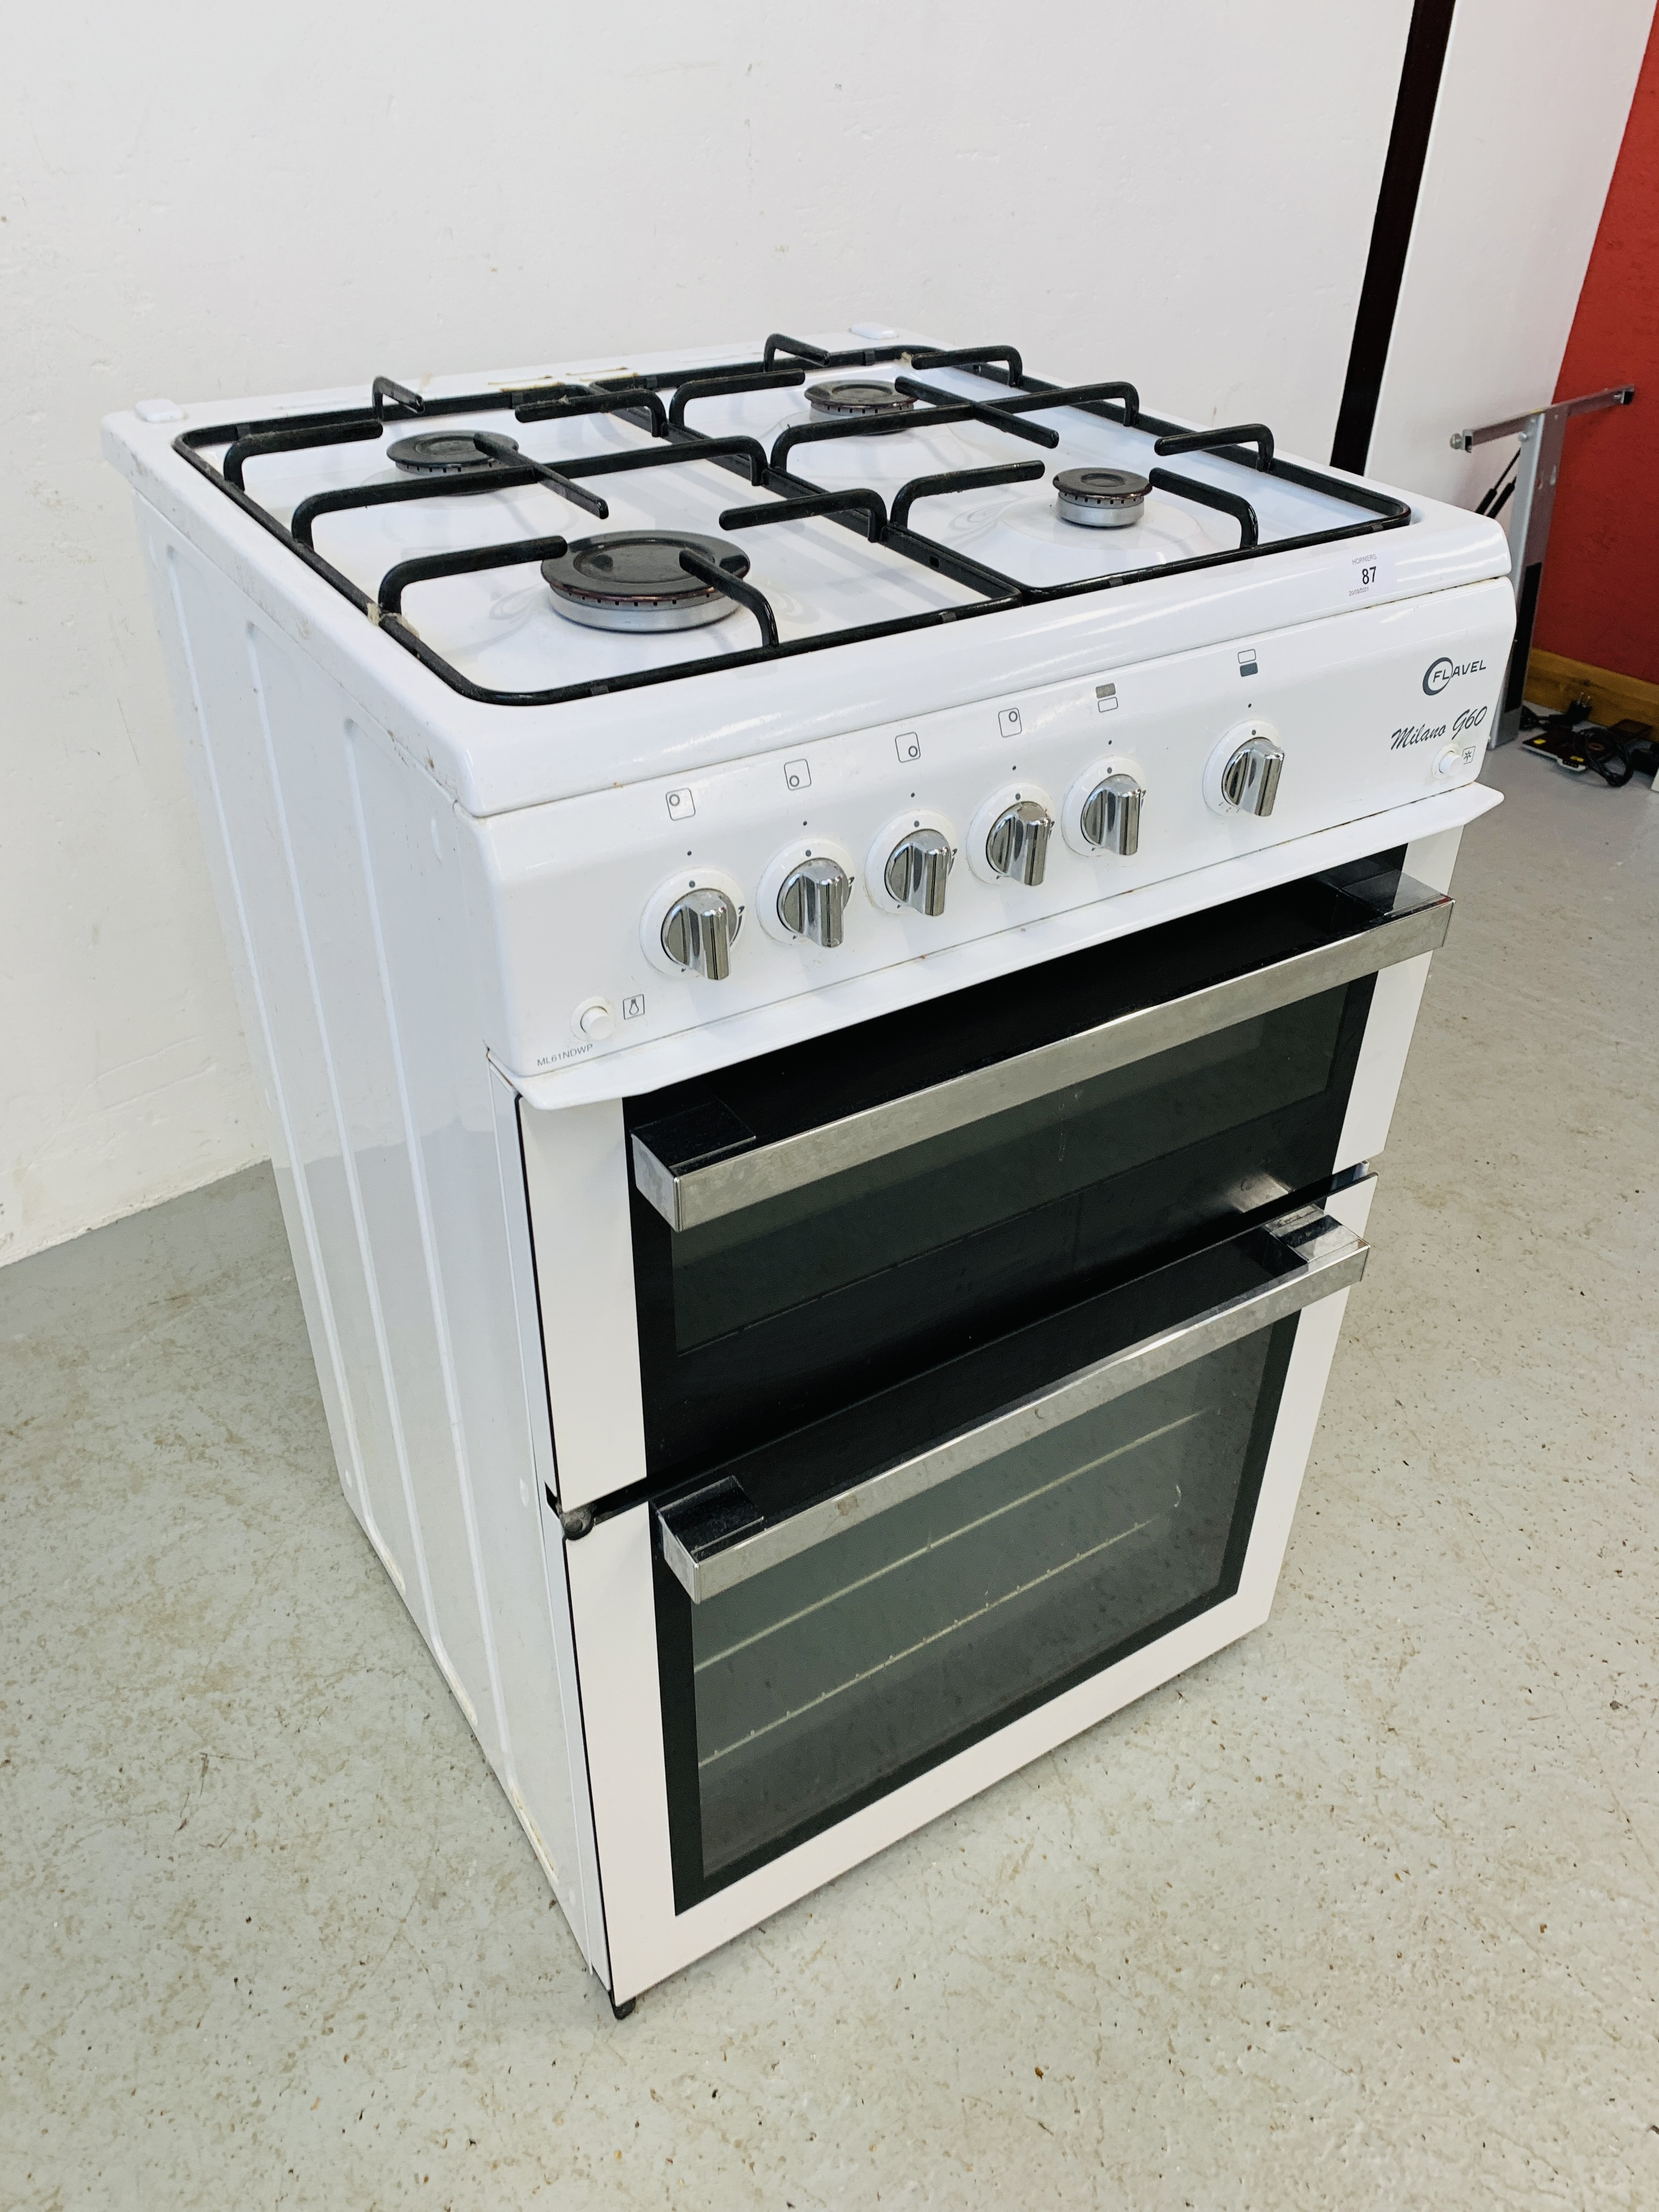 A FLAVEL MILANO G60 DOUBLE OVEN MAINS GAS COOKER - TRADE ONLY - Image 3 of 9